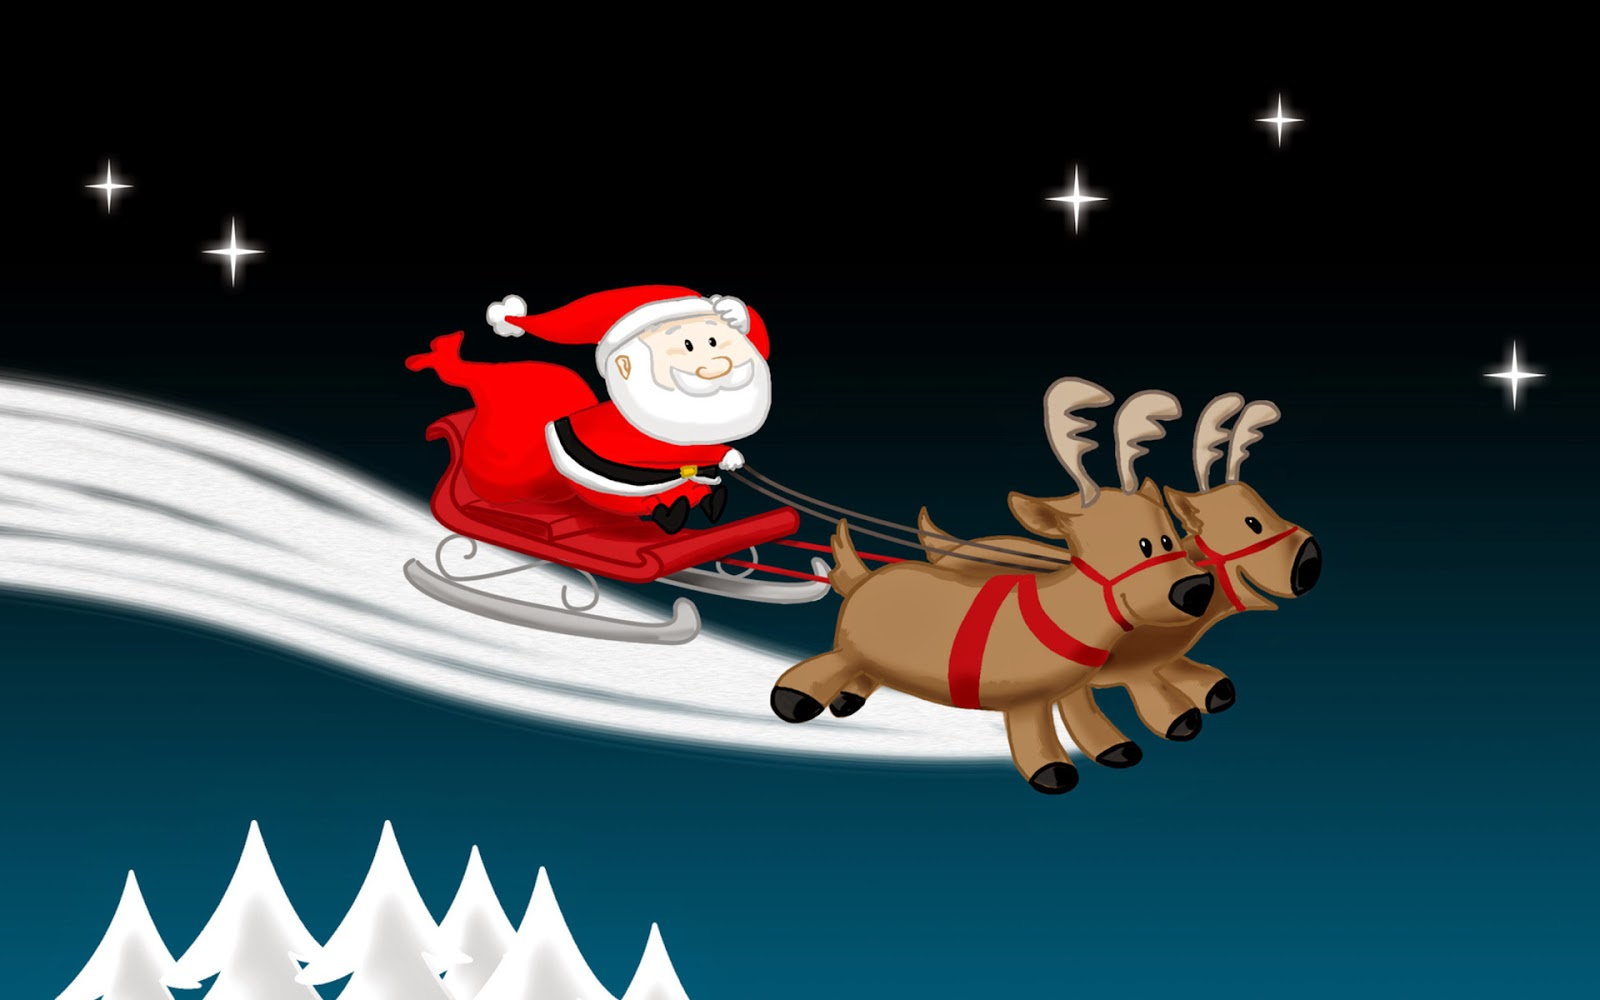 Santa-flying-in-sky-cartoon-image-for-kids.jpg